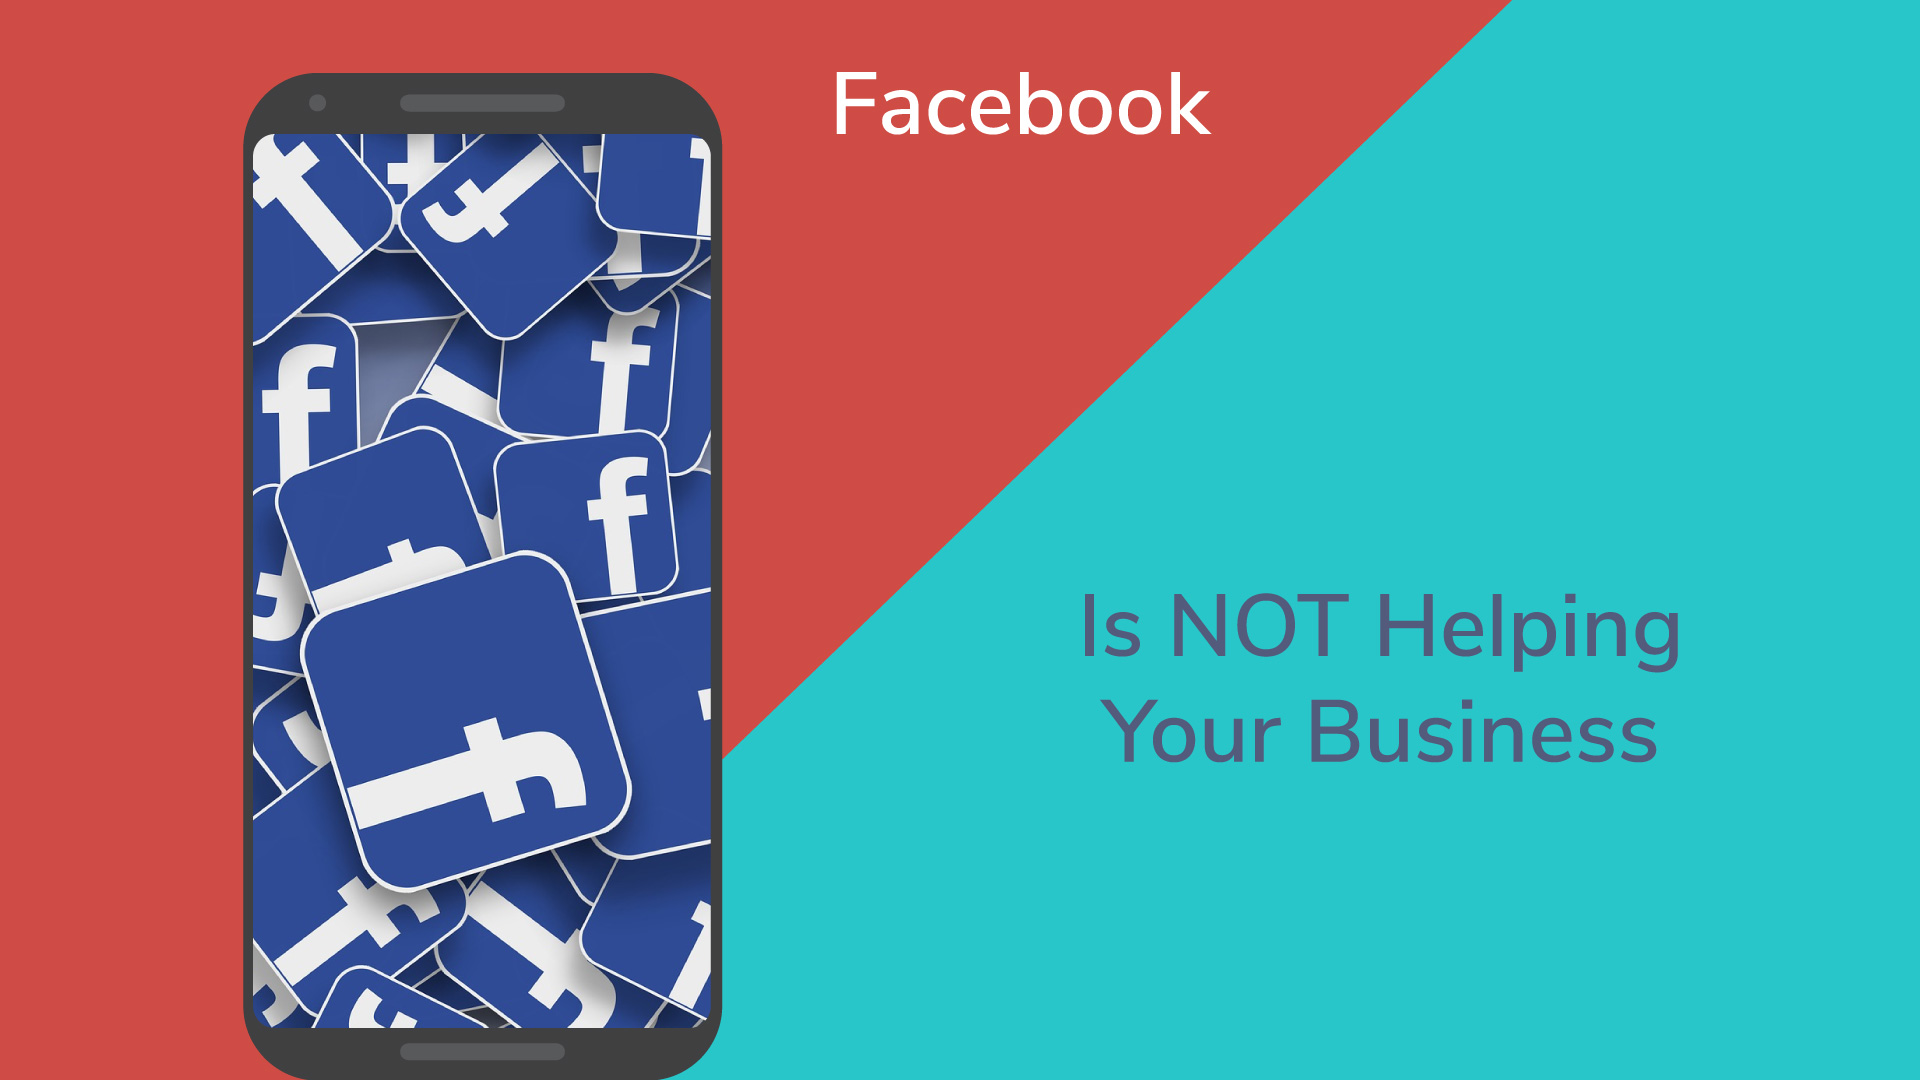 Facebook is not helping your business